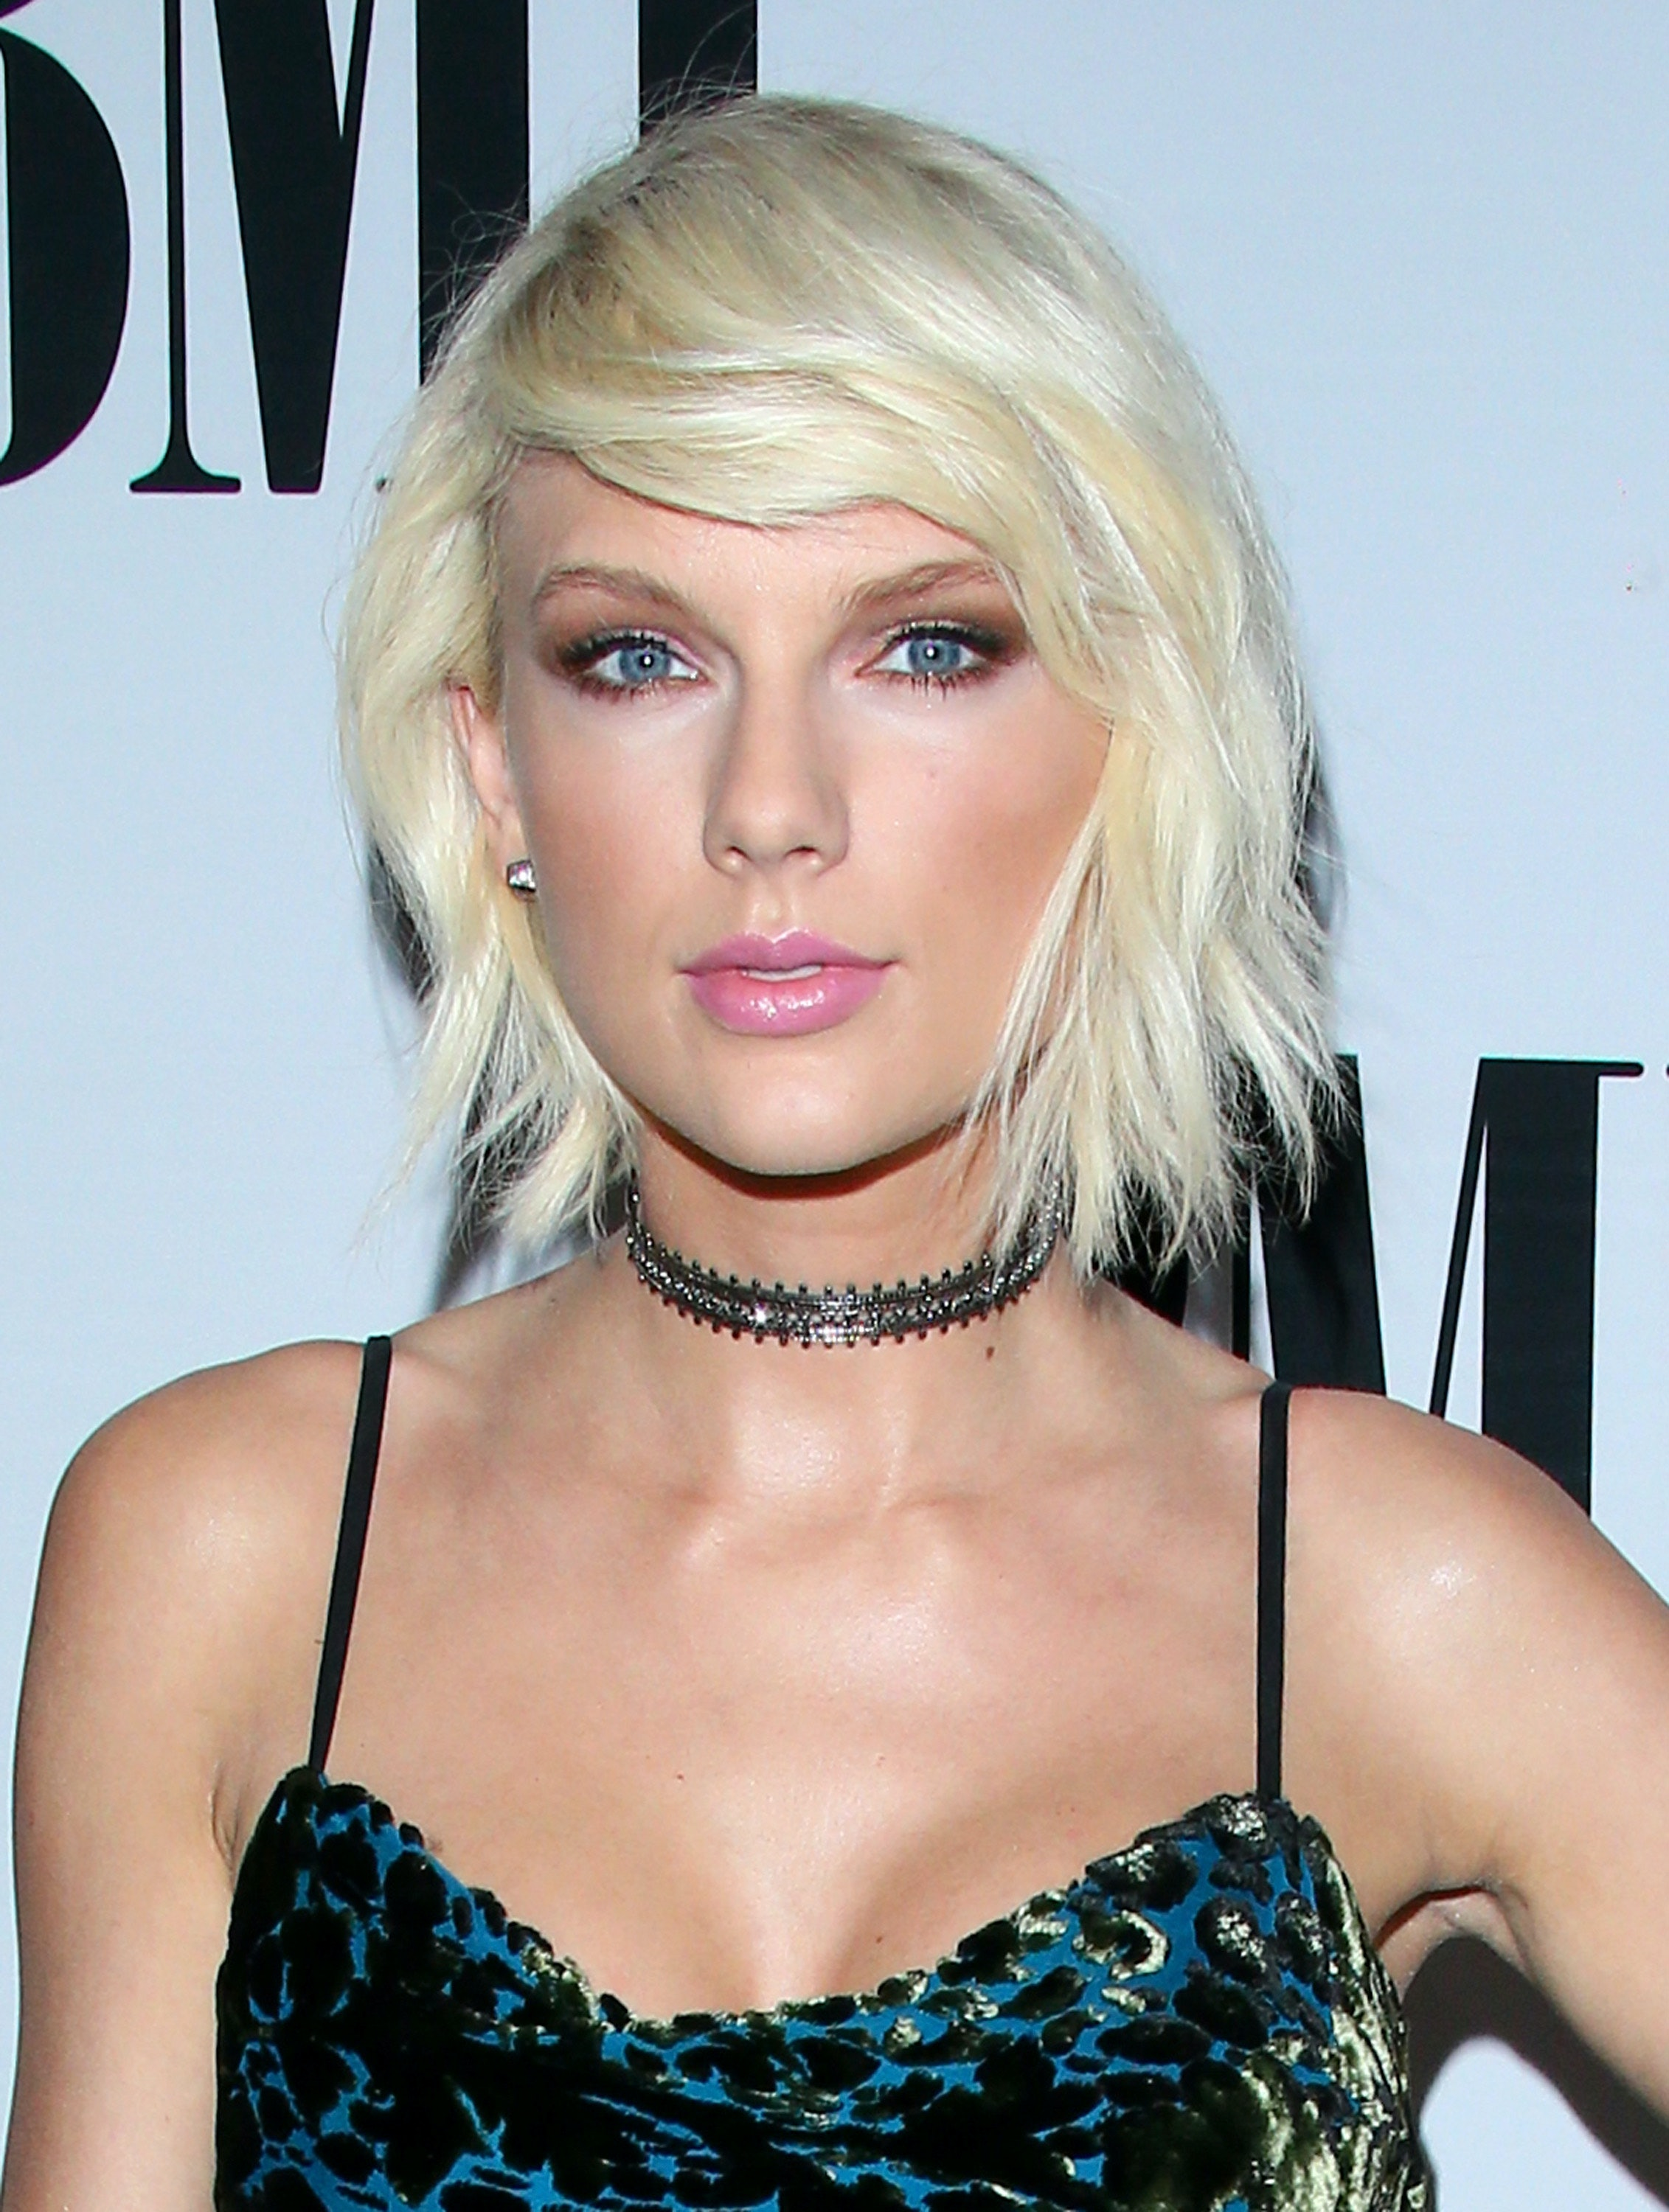 Photos Of Taylor Swifts Natural Blonde Hair Prove Shes Ditched The